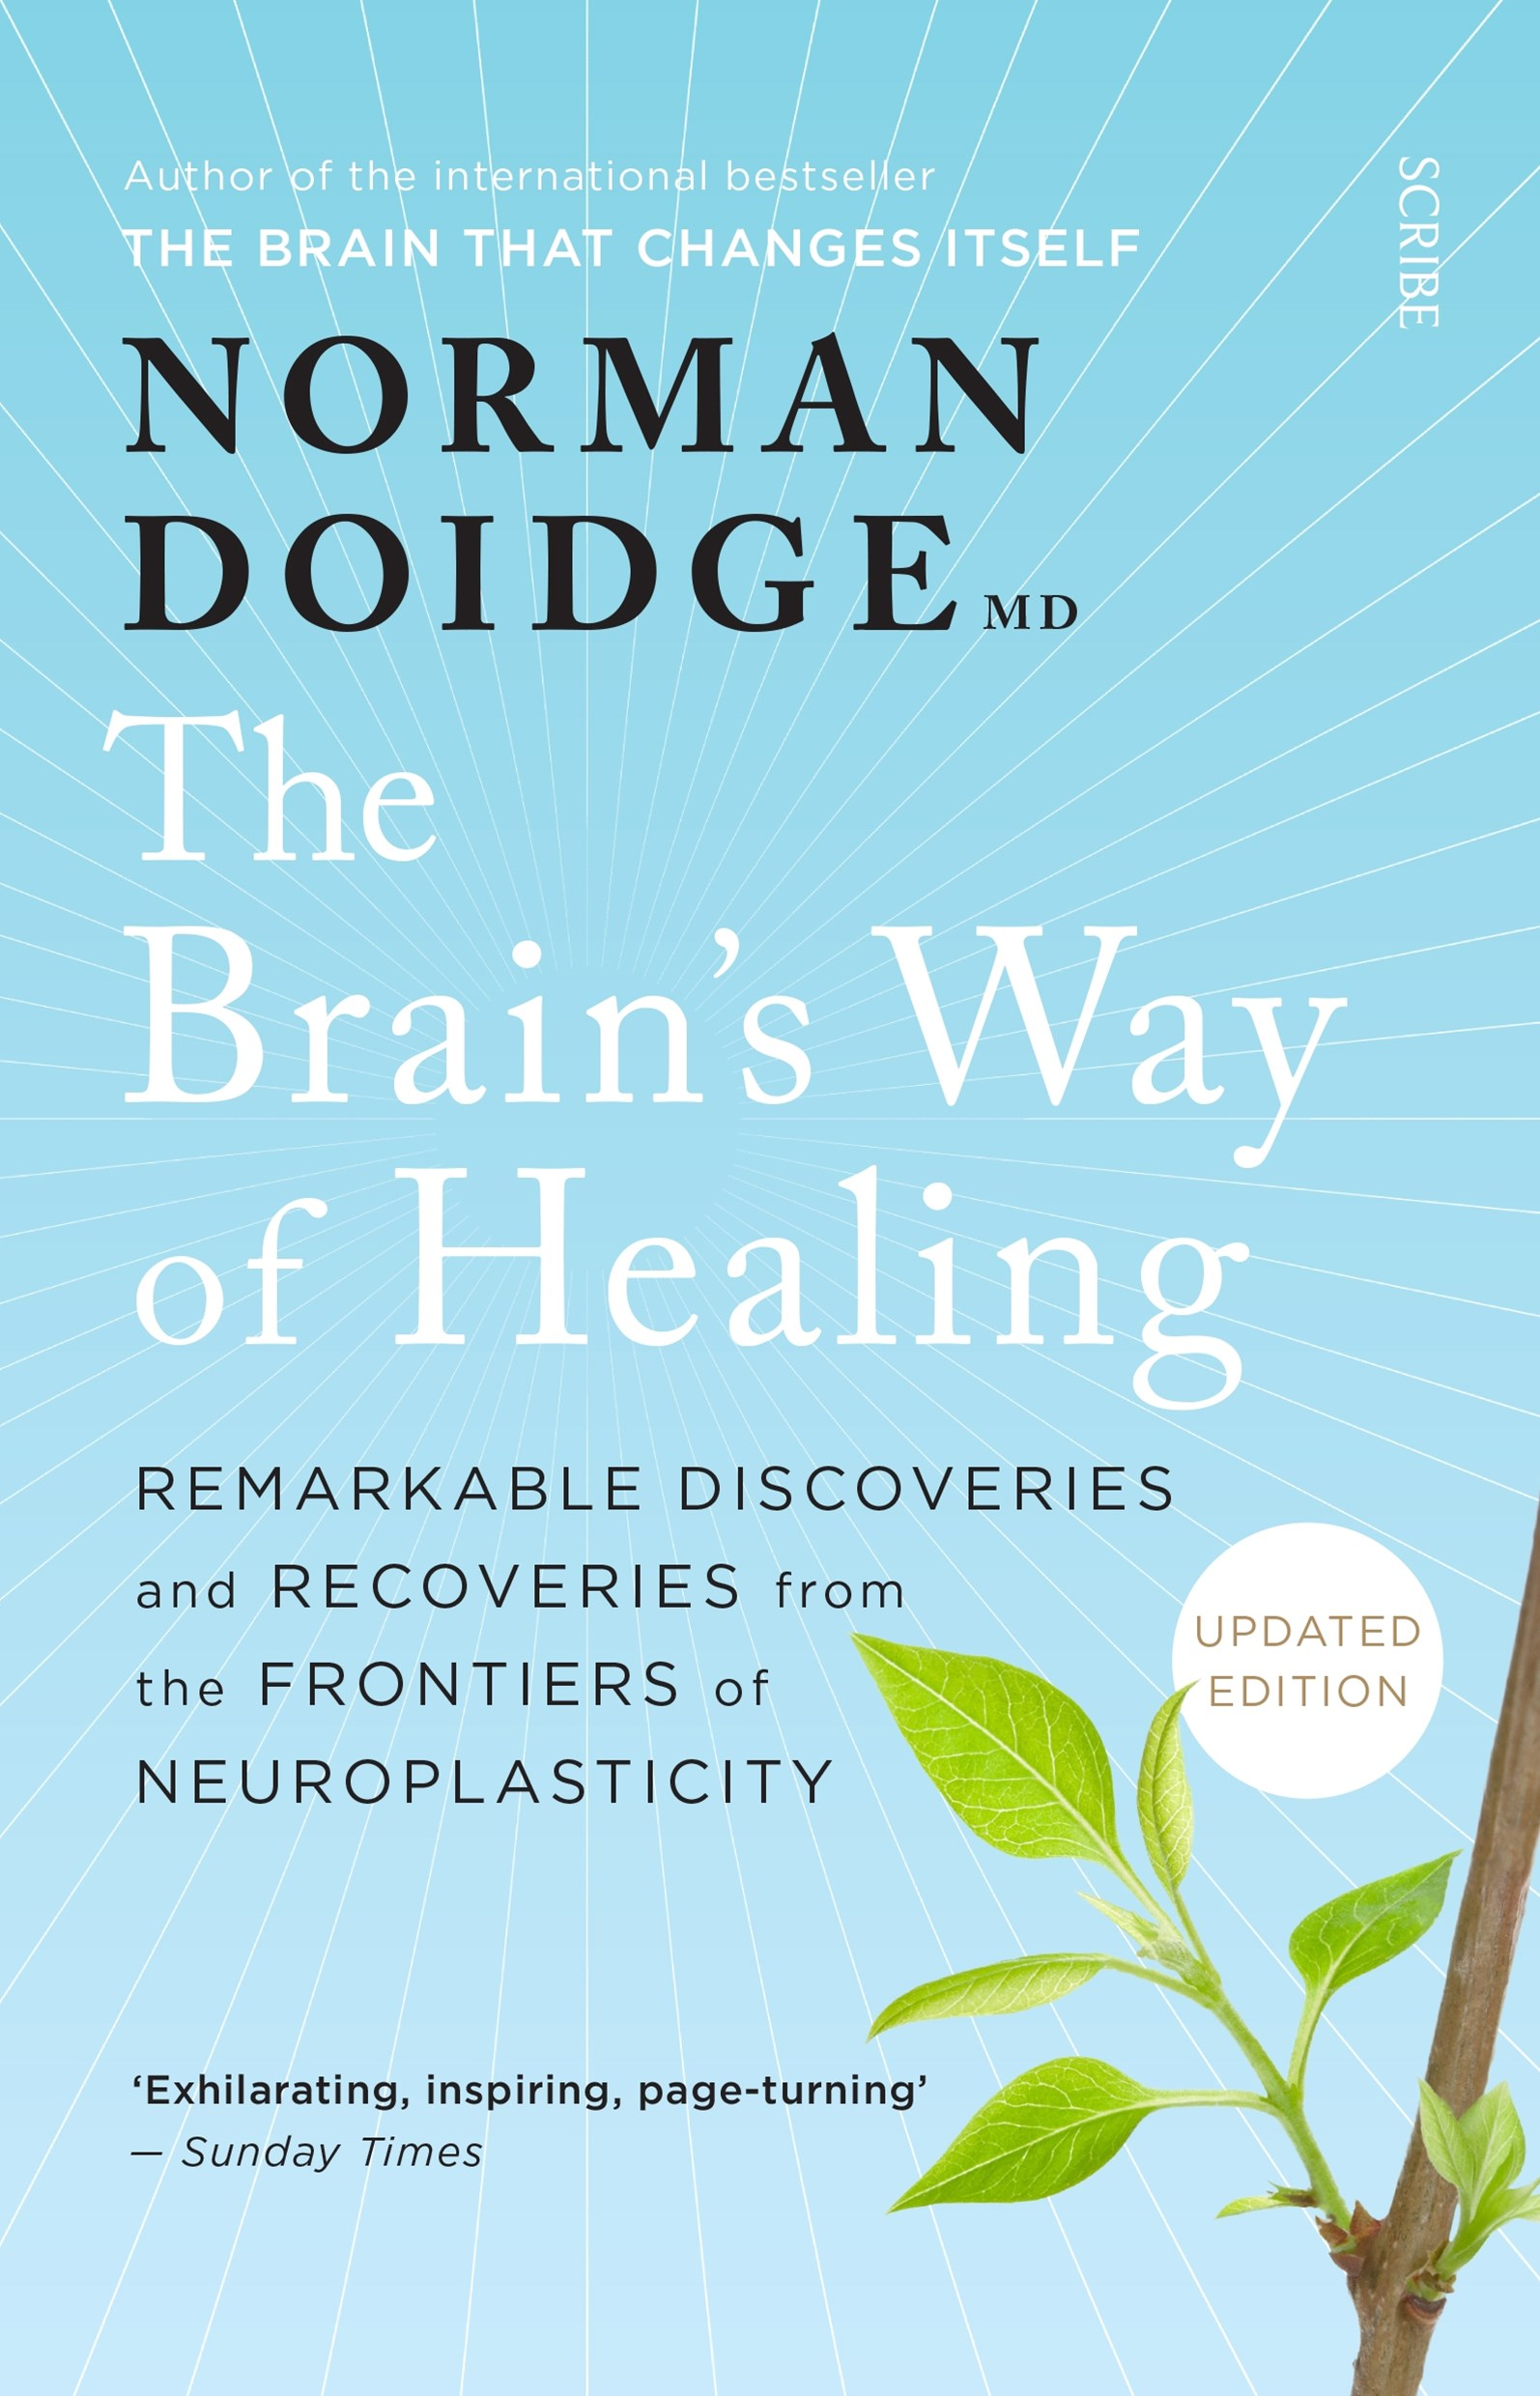 Brain's Way of Healing: remarkable discoveries and recoveries from the frontiers of neuroplasticity